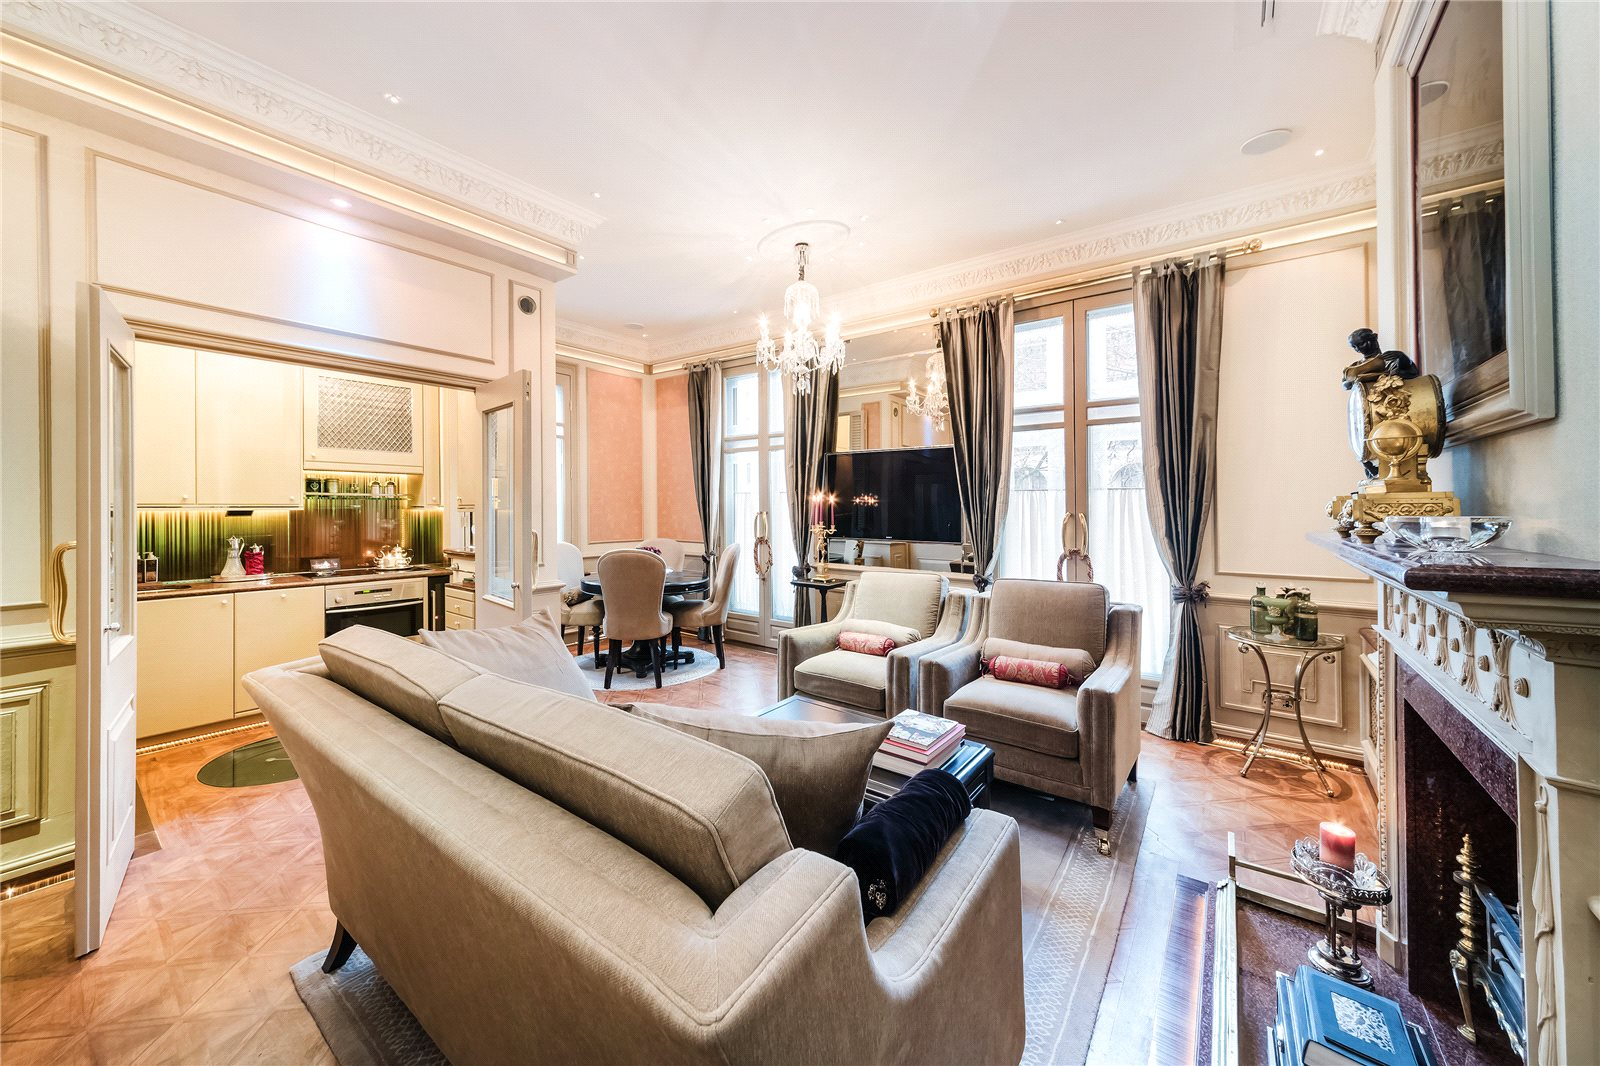 Appartamenti per Vendita alle ore Thurloe Place, South Kensington, SW7 South Kensington, Inghilterra